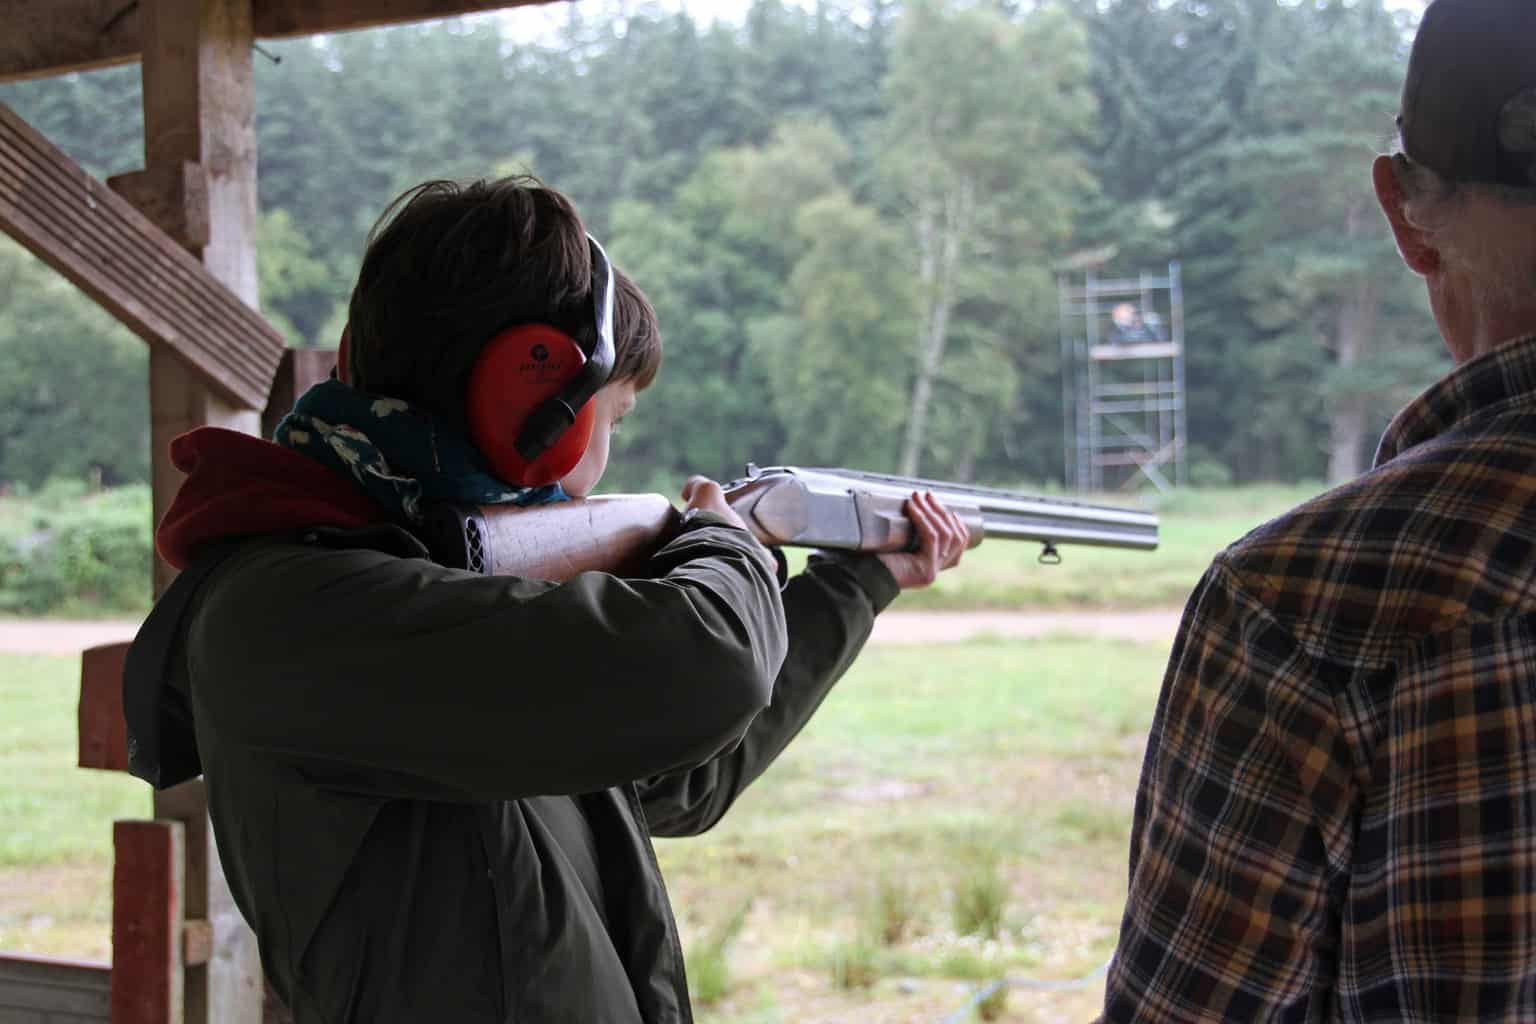 Teenager shooting with a rifle at a gun range in Massachusetts